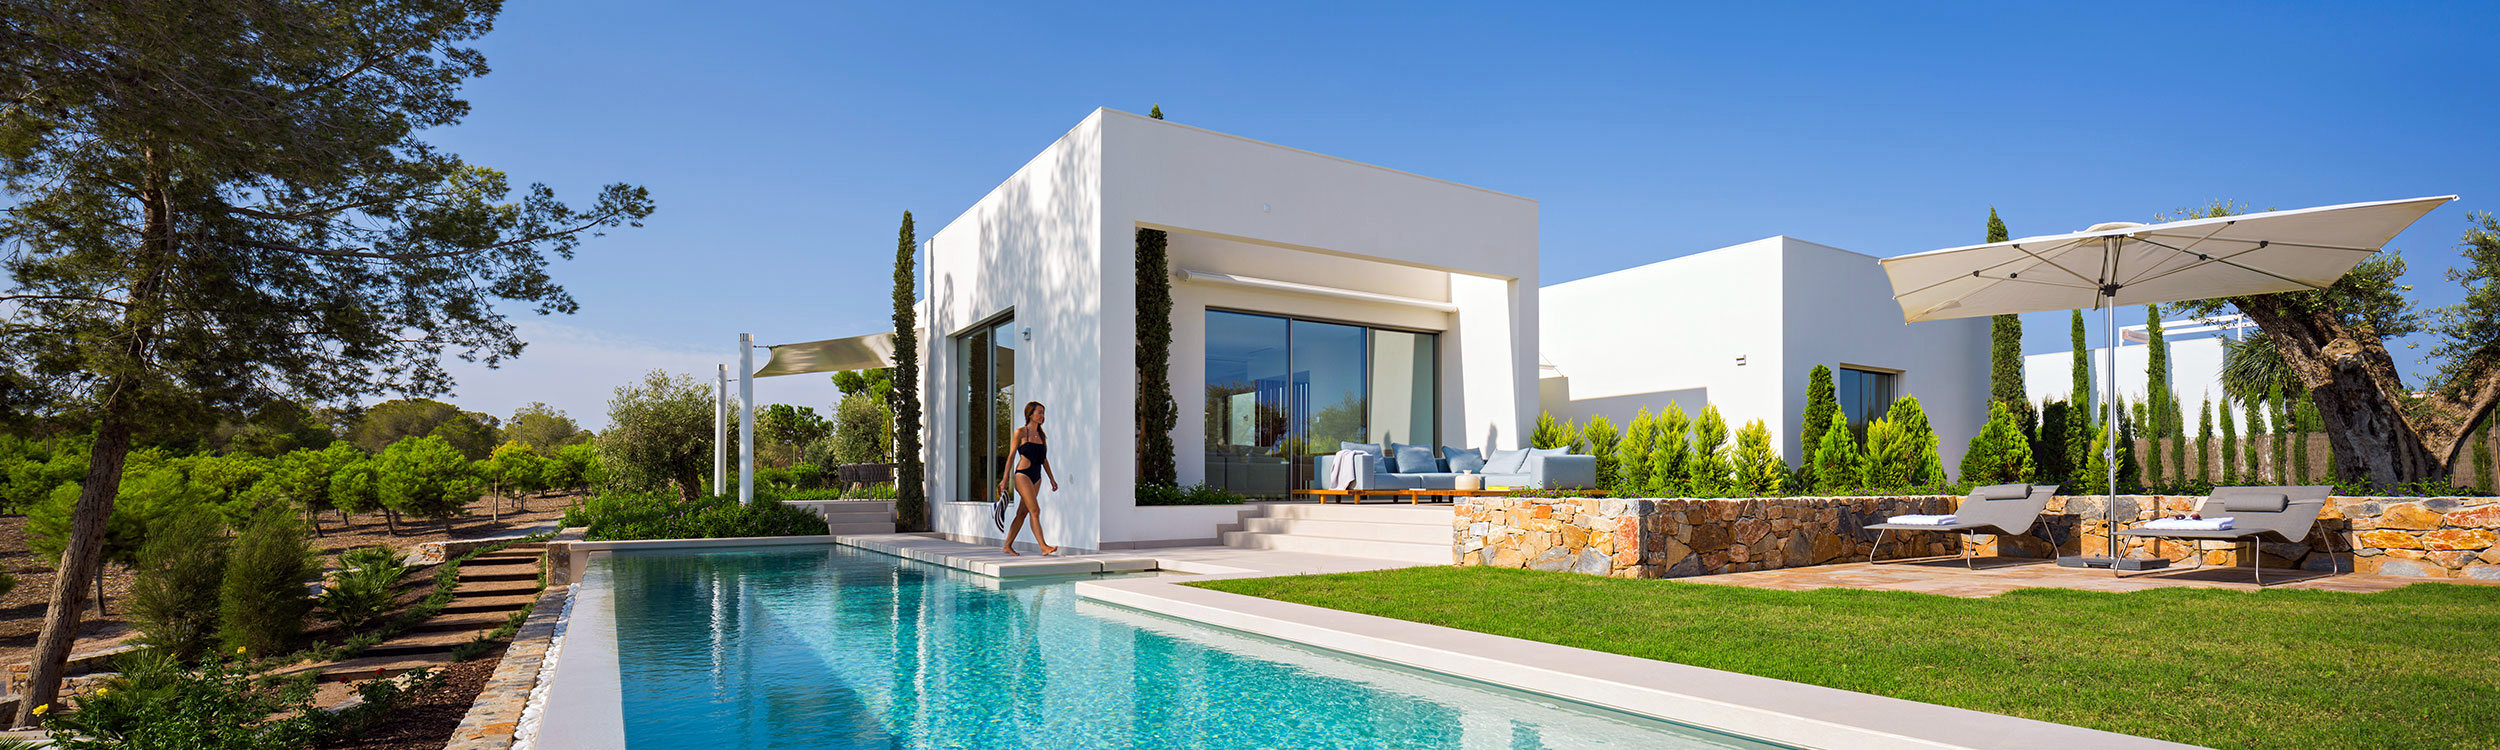 Programme immobilier neuf sur golfmcb immobilier costa blanca for Immobilier maison